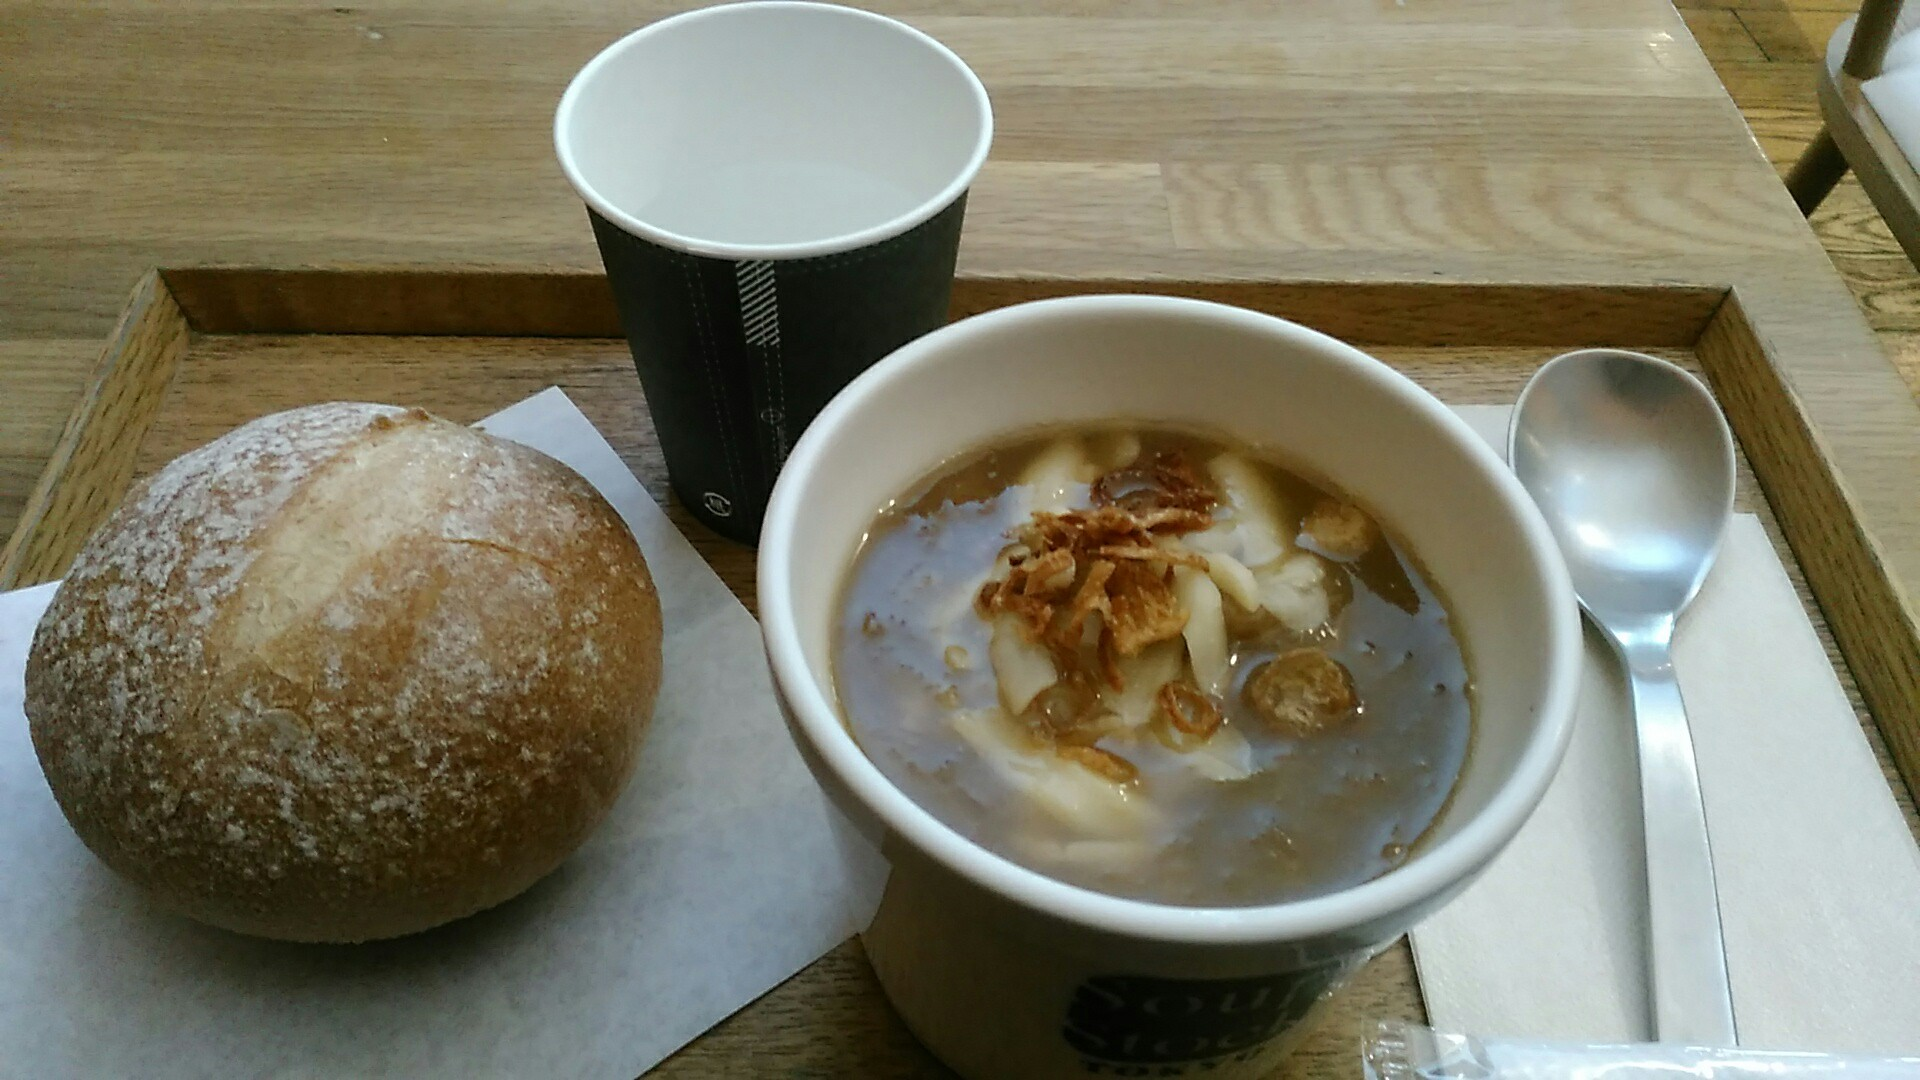 Soup Stock Tokyo 『ゴッホの玉葱のスープ 』_a0326295_13201619.jpg